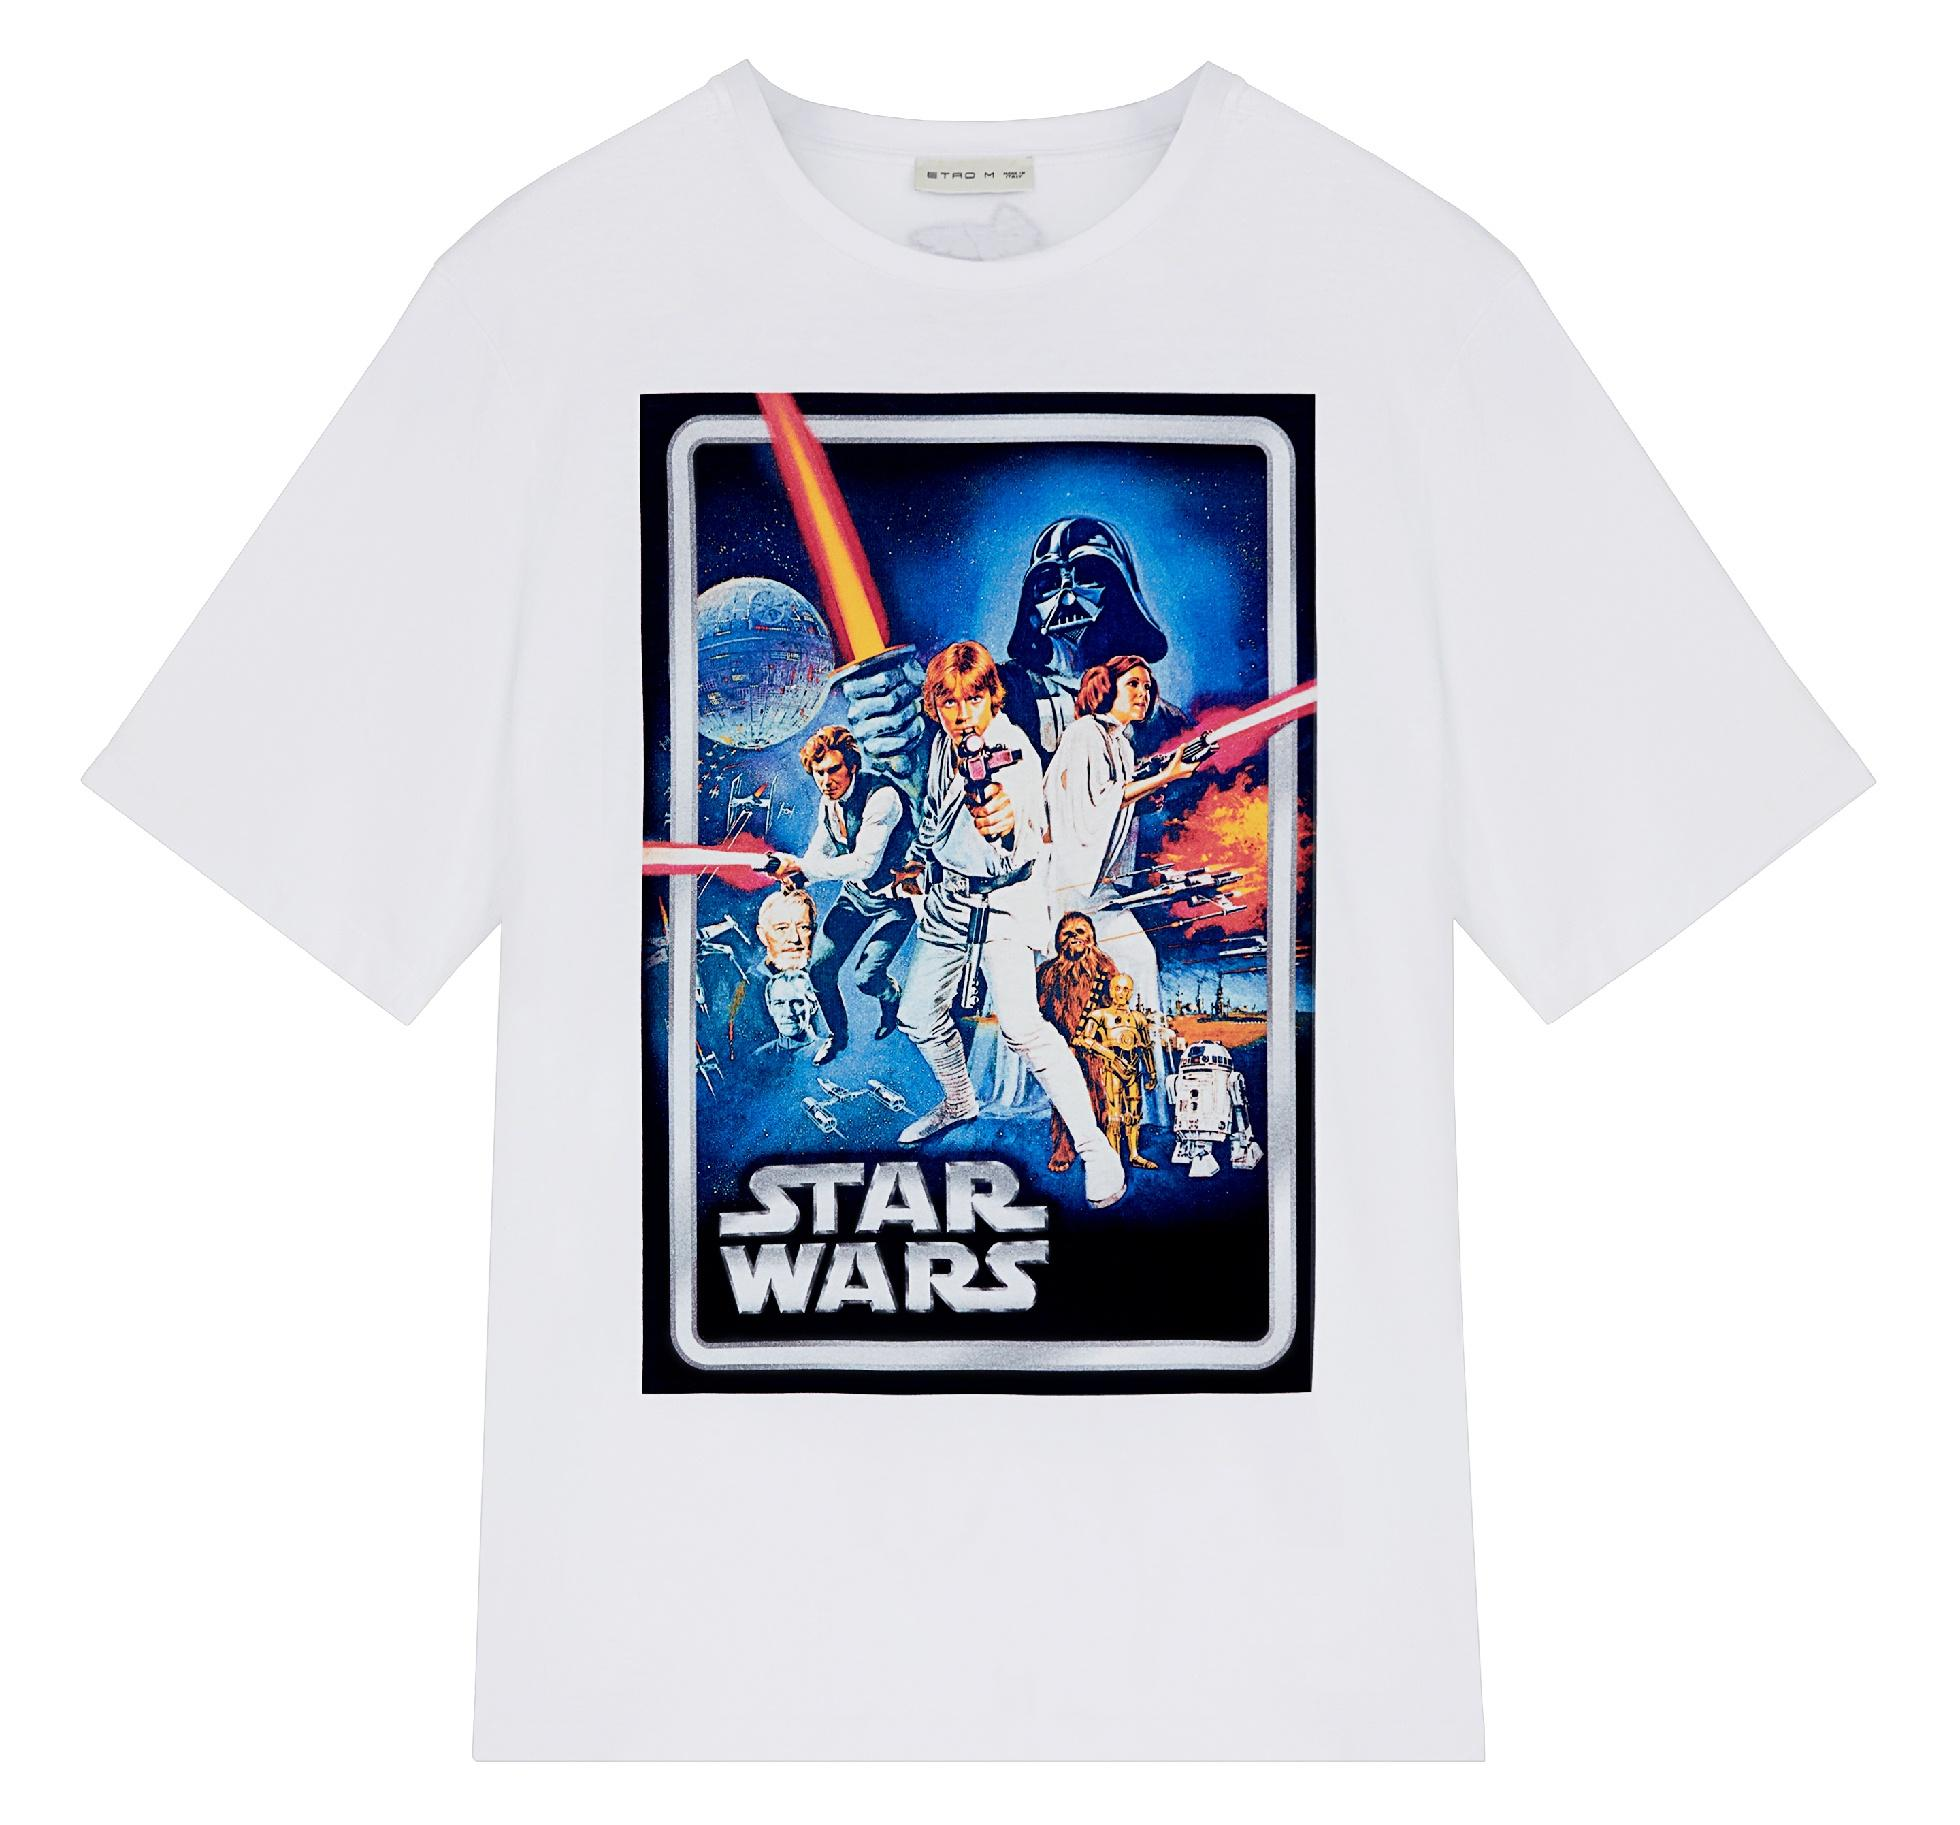 ETRO X STAR WARS white t-shirt featuring a vintage print from the film series.